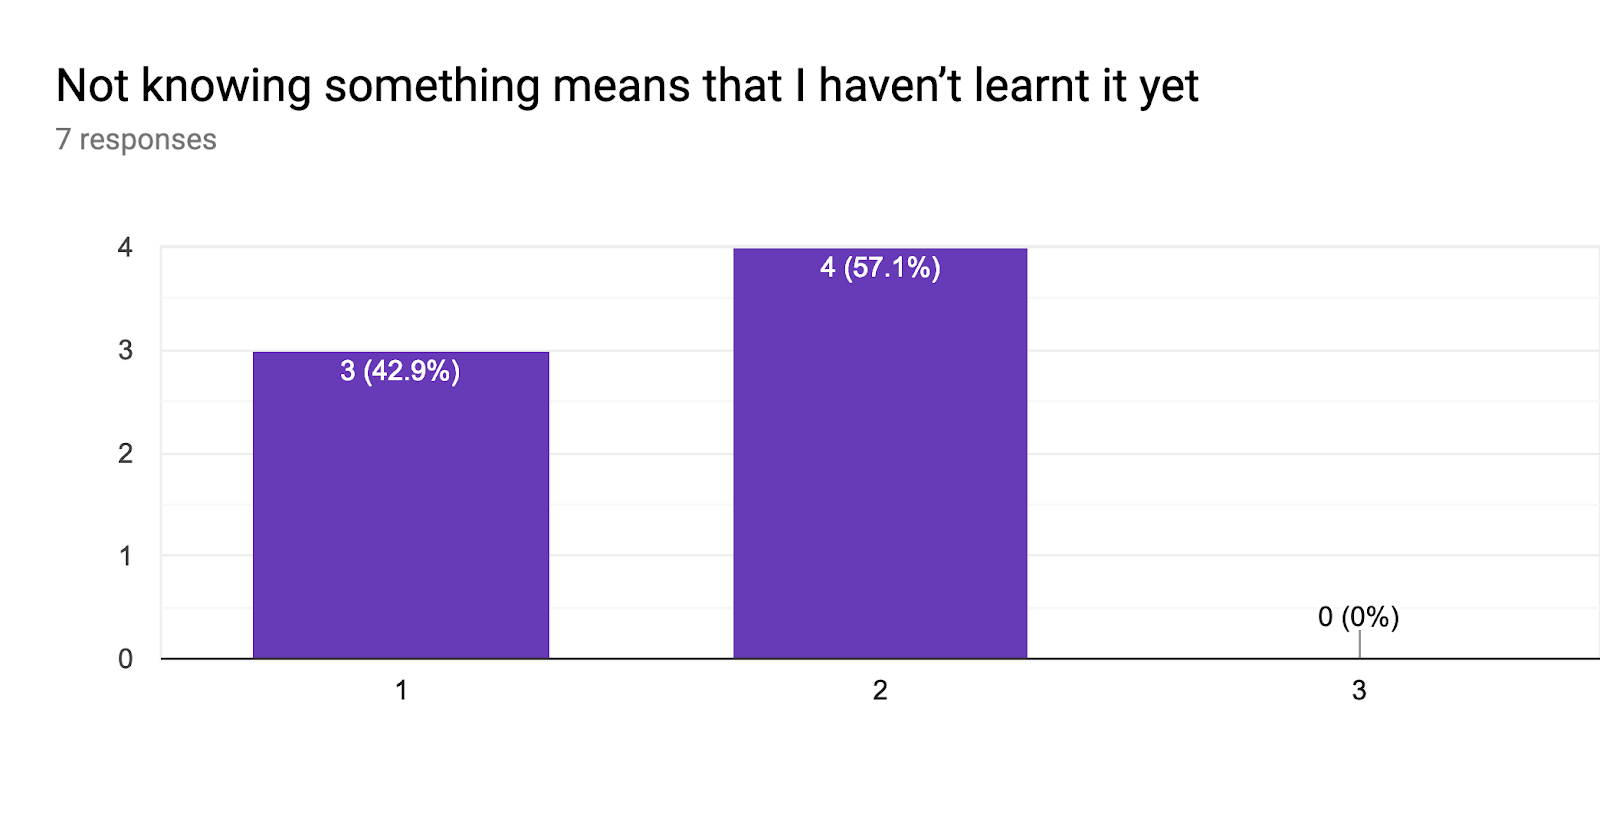 Forms response chart. Question title: Not knowing something means that I haven't learnt it yet. Number of responses: 7 responses.